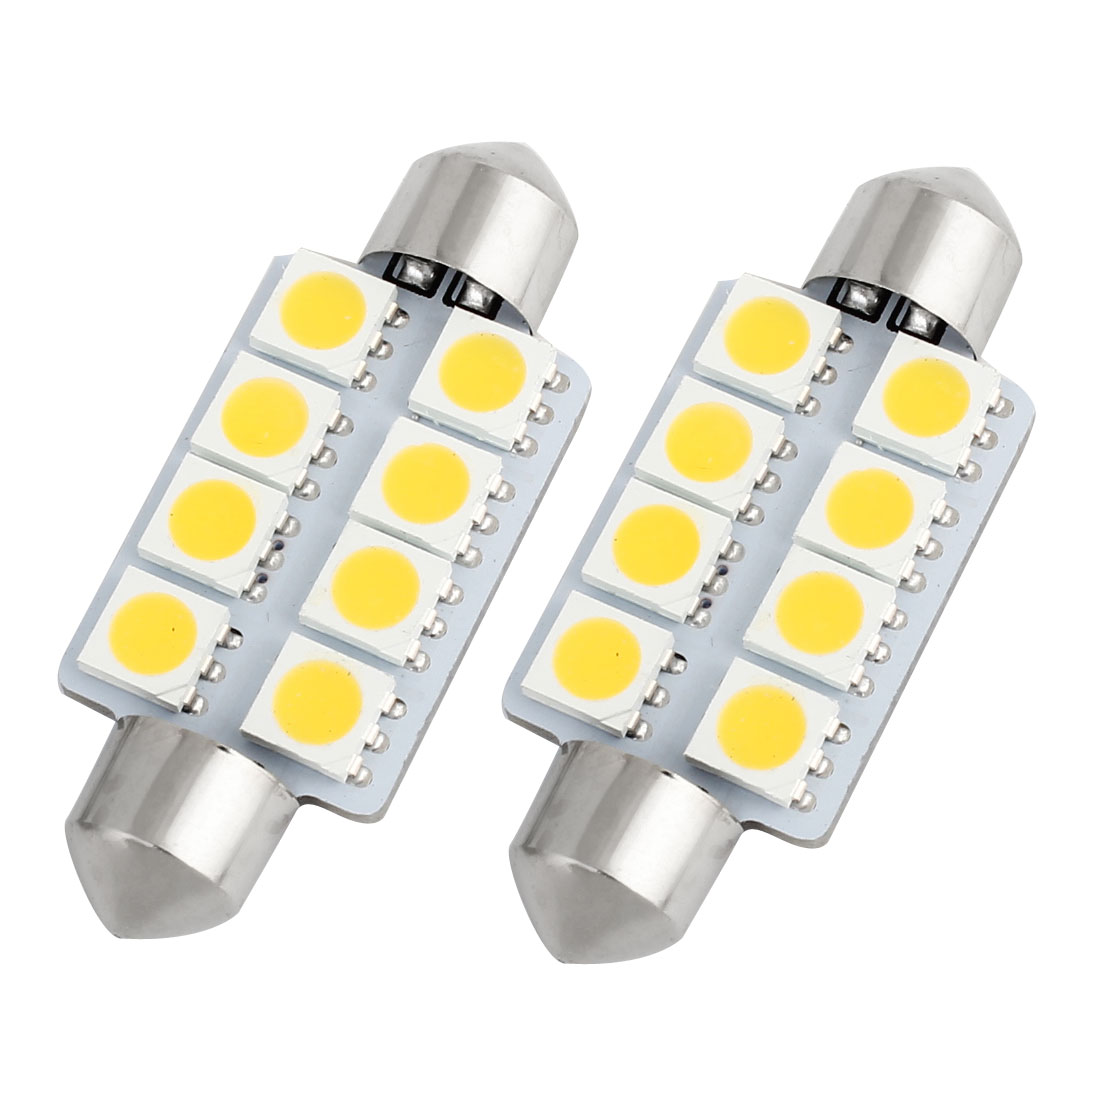 2pcs 41mm 5050 SMD 8-LED Festoon Dome Light Warm White 6413 211-2 212-2 560 Internal